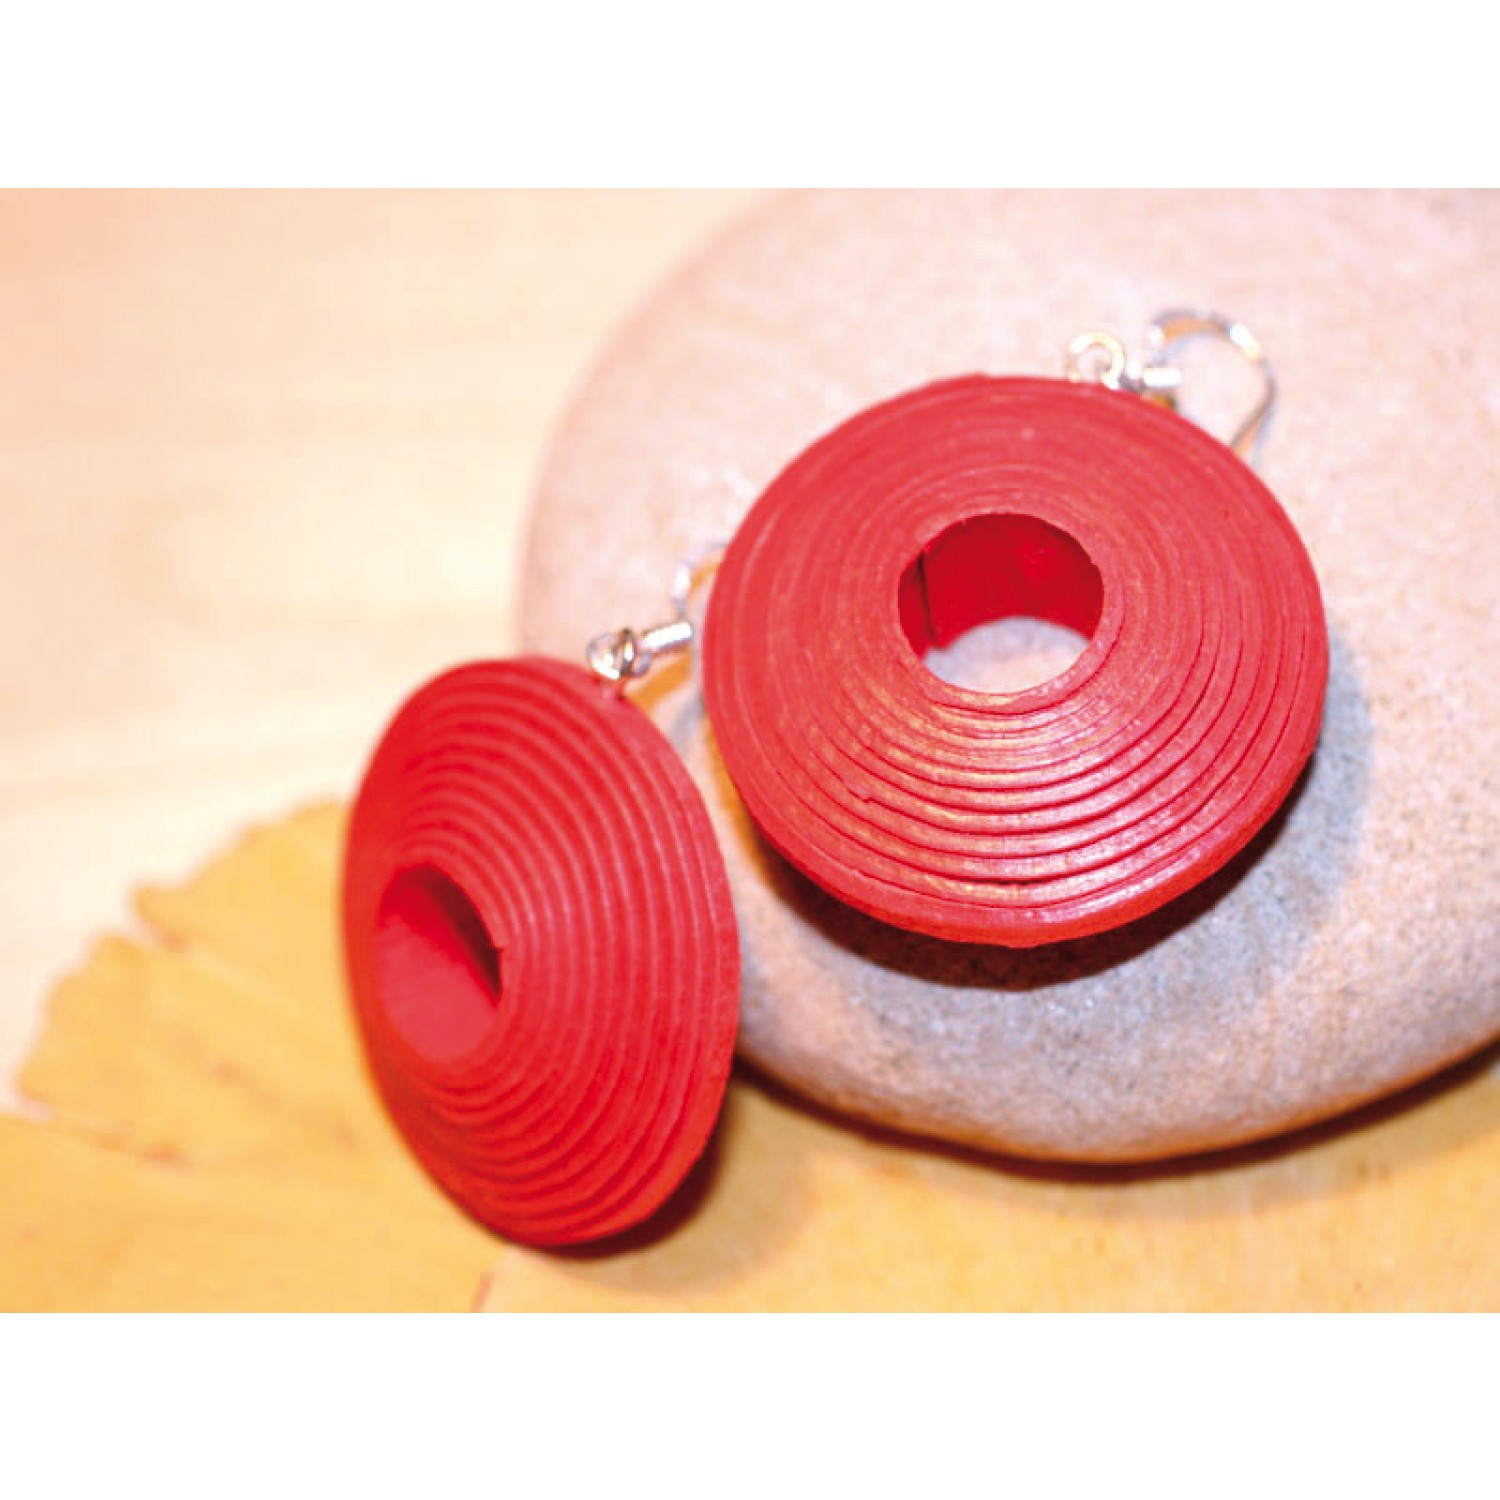 Eco Paper-Earrings – red II | Sundara Paper Art